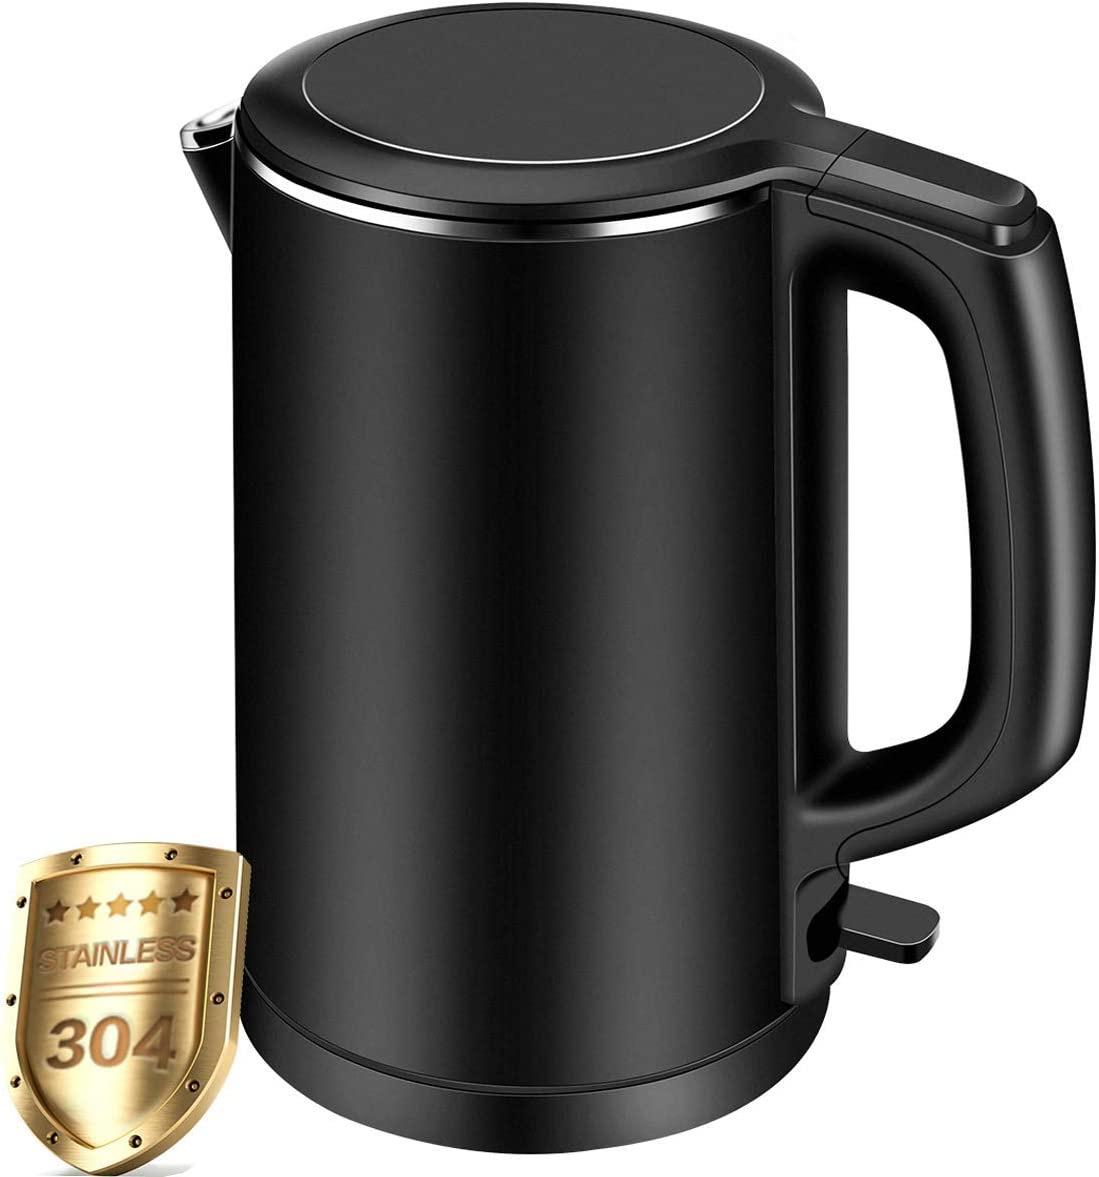 Electric Kettle, CUSIBOX 1.5L Double Wall 100 Stainless Steel Tea Kettle Cool Touch, 1500W Fast Boil Cordless Water Kettle with Auto Shut-Off Boil Dry Protection